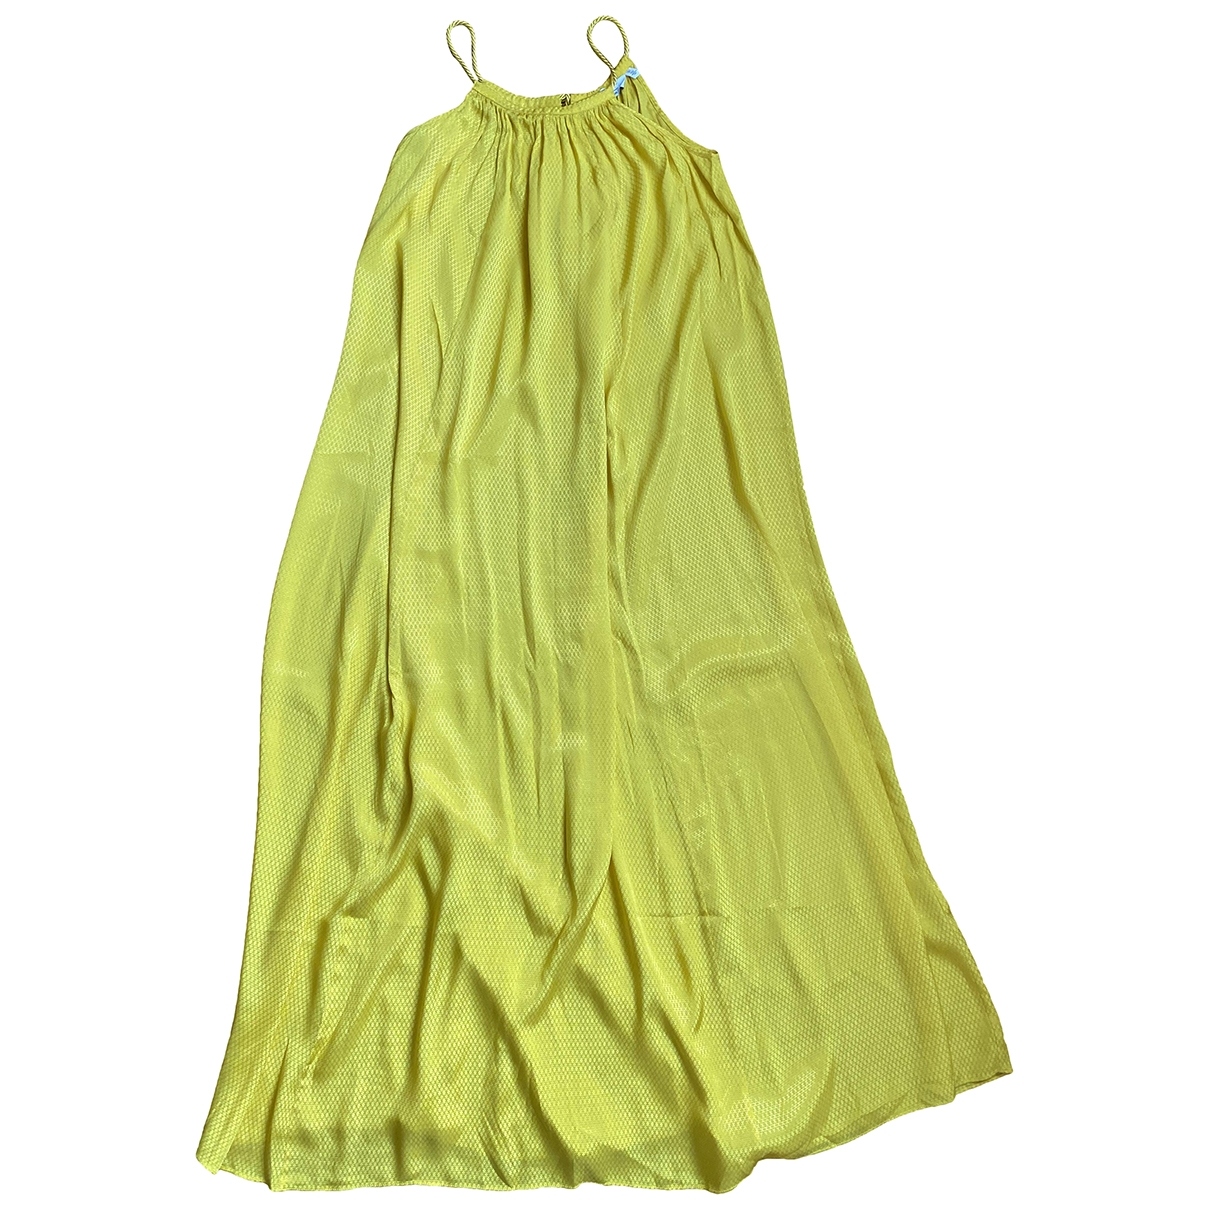 & Other Stories - Robe   pour femme - jaune